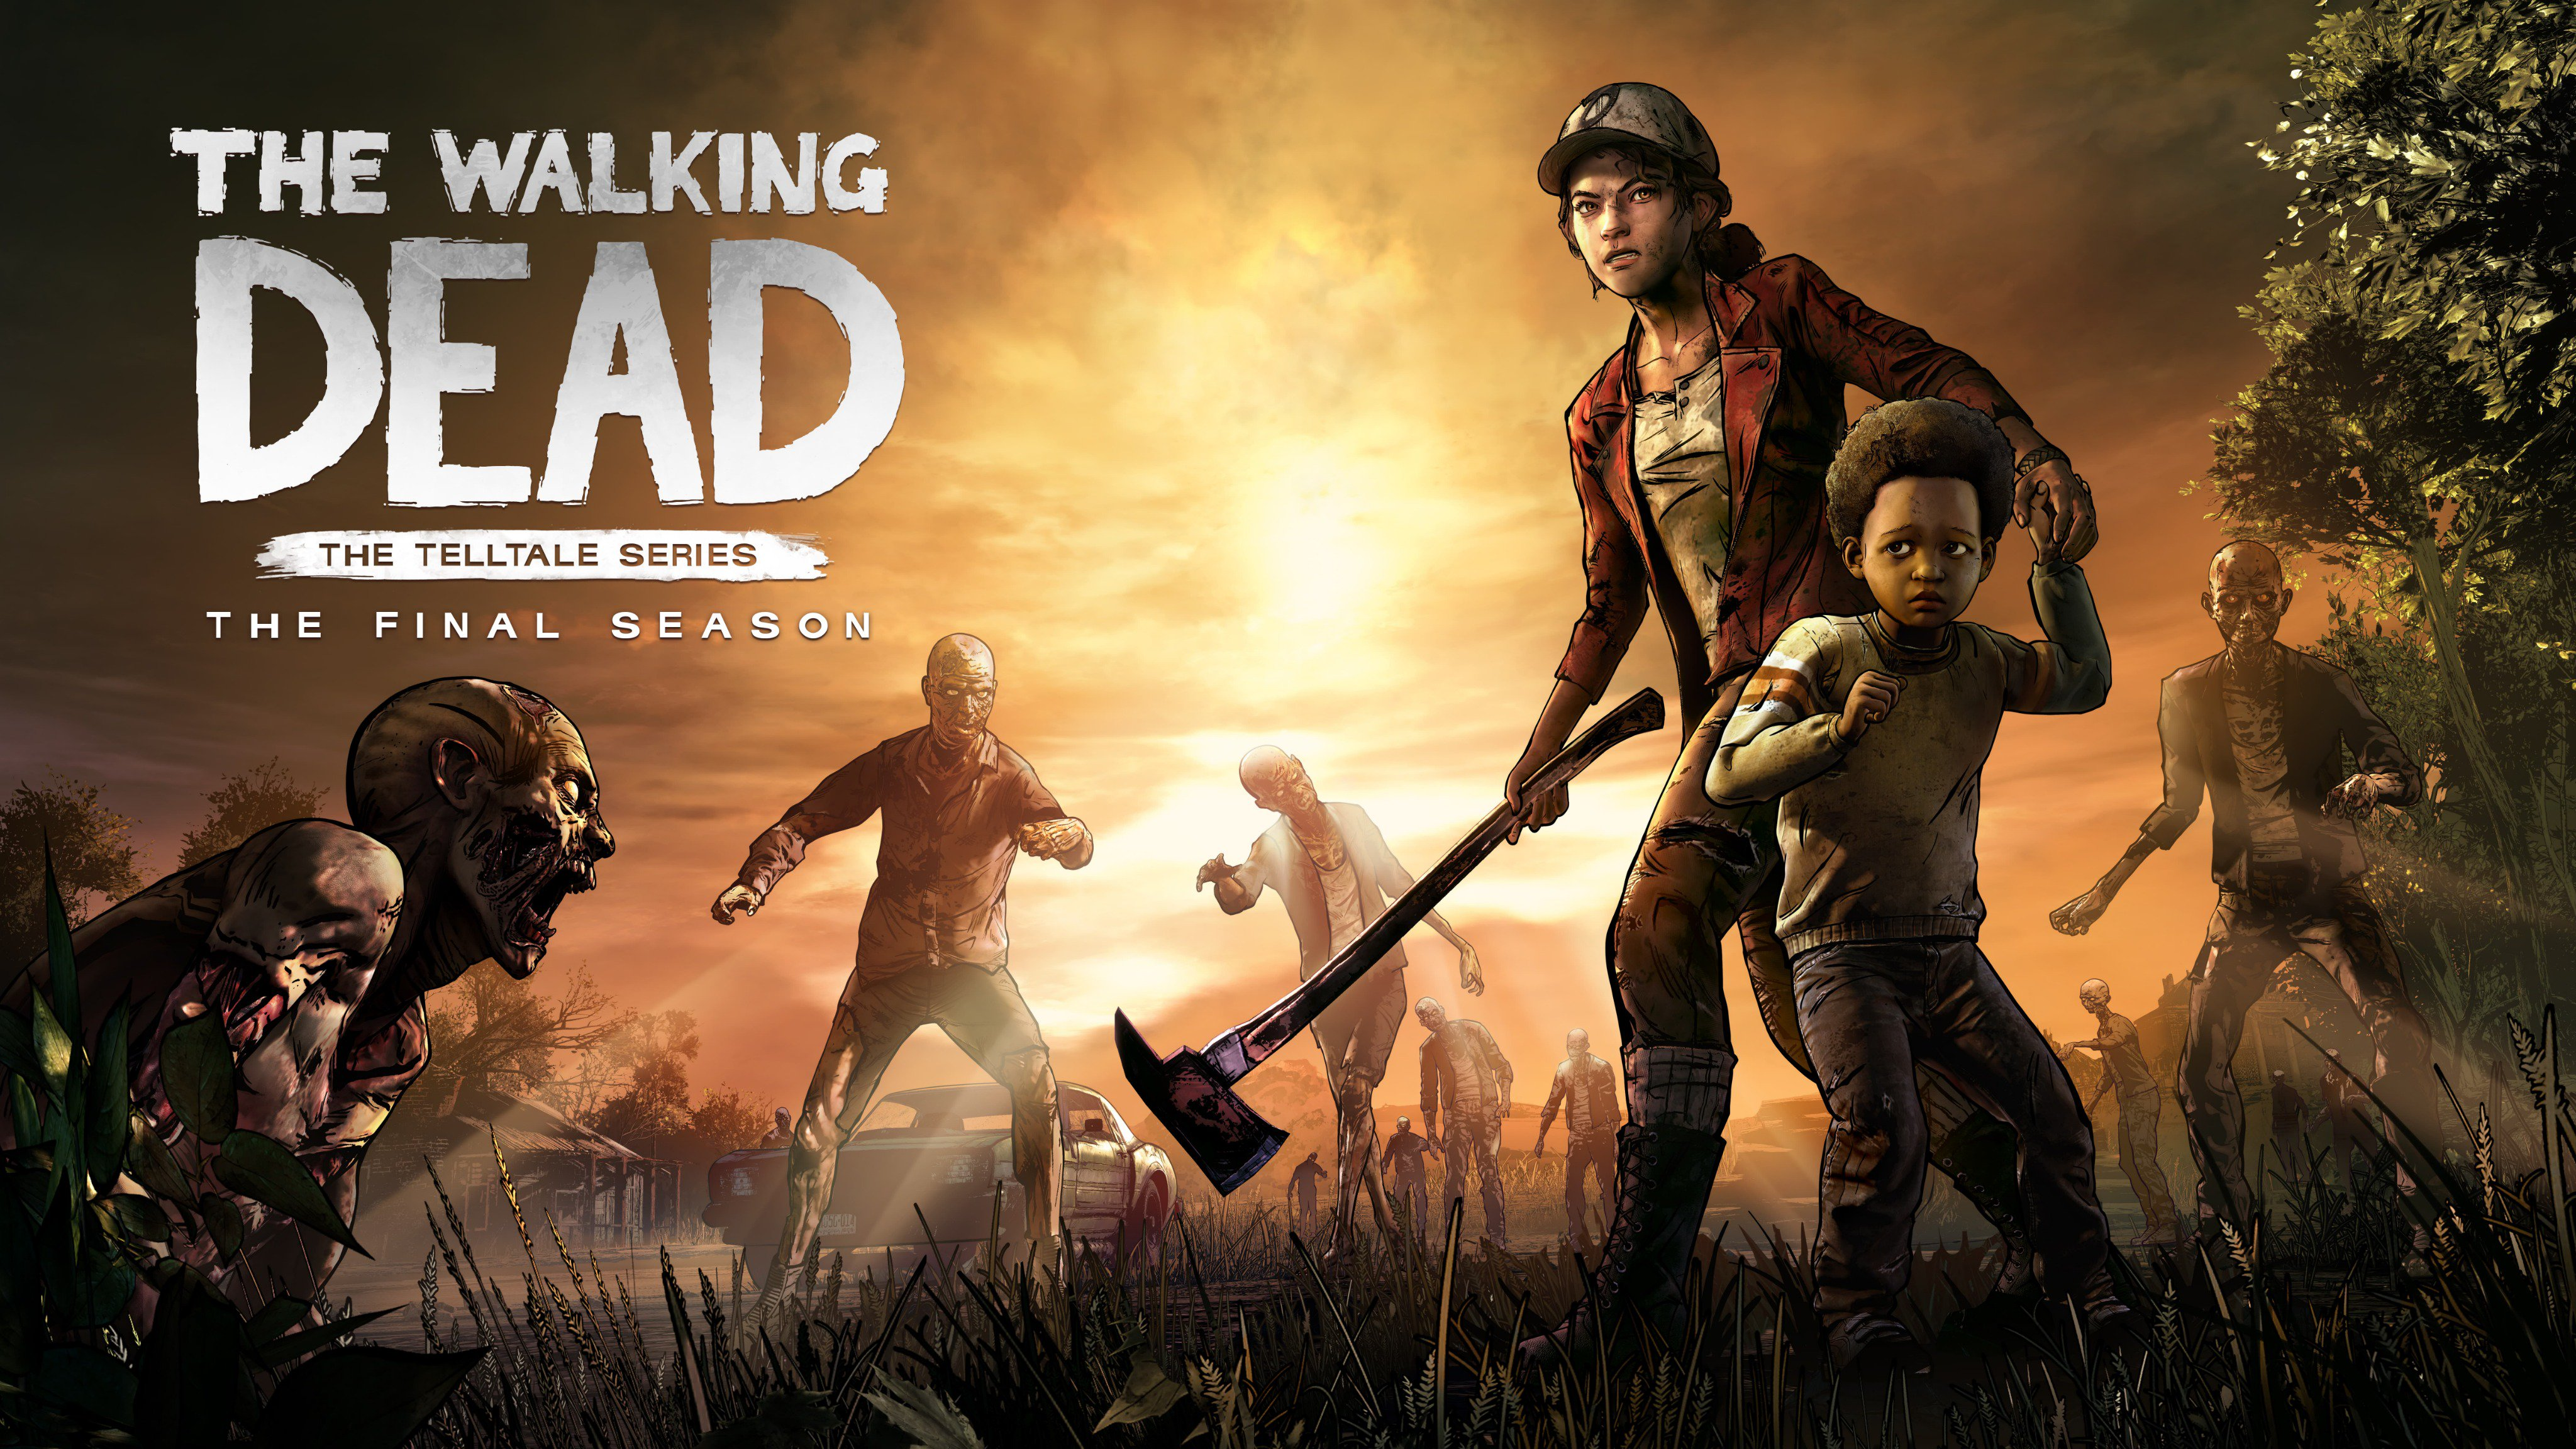 The Walking Dead The Final Season 4k Hd Games 4k Wallpapers